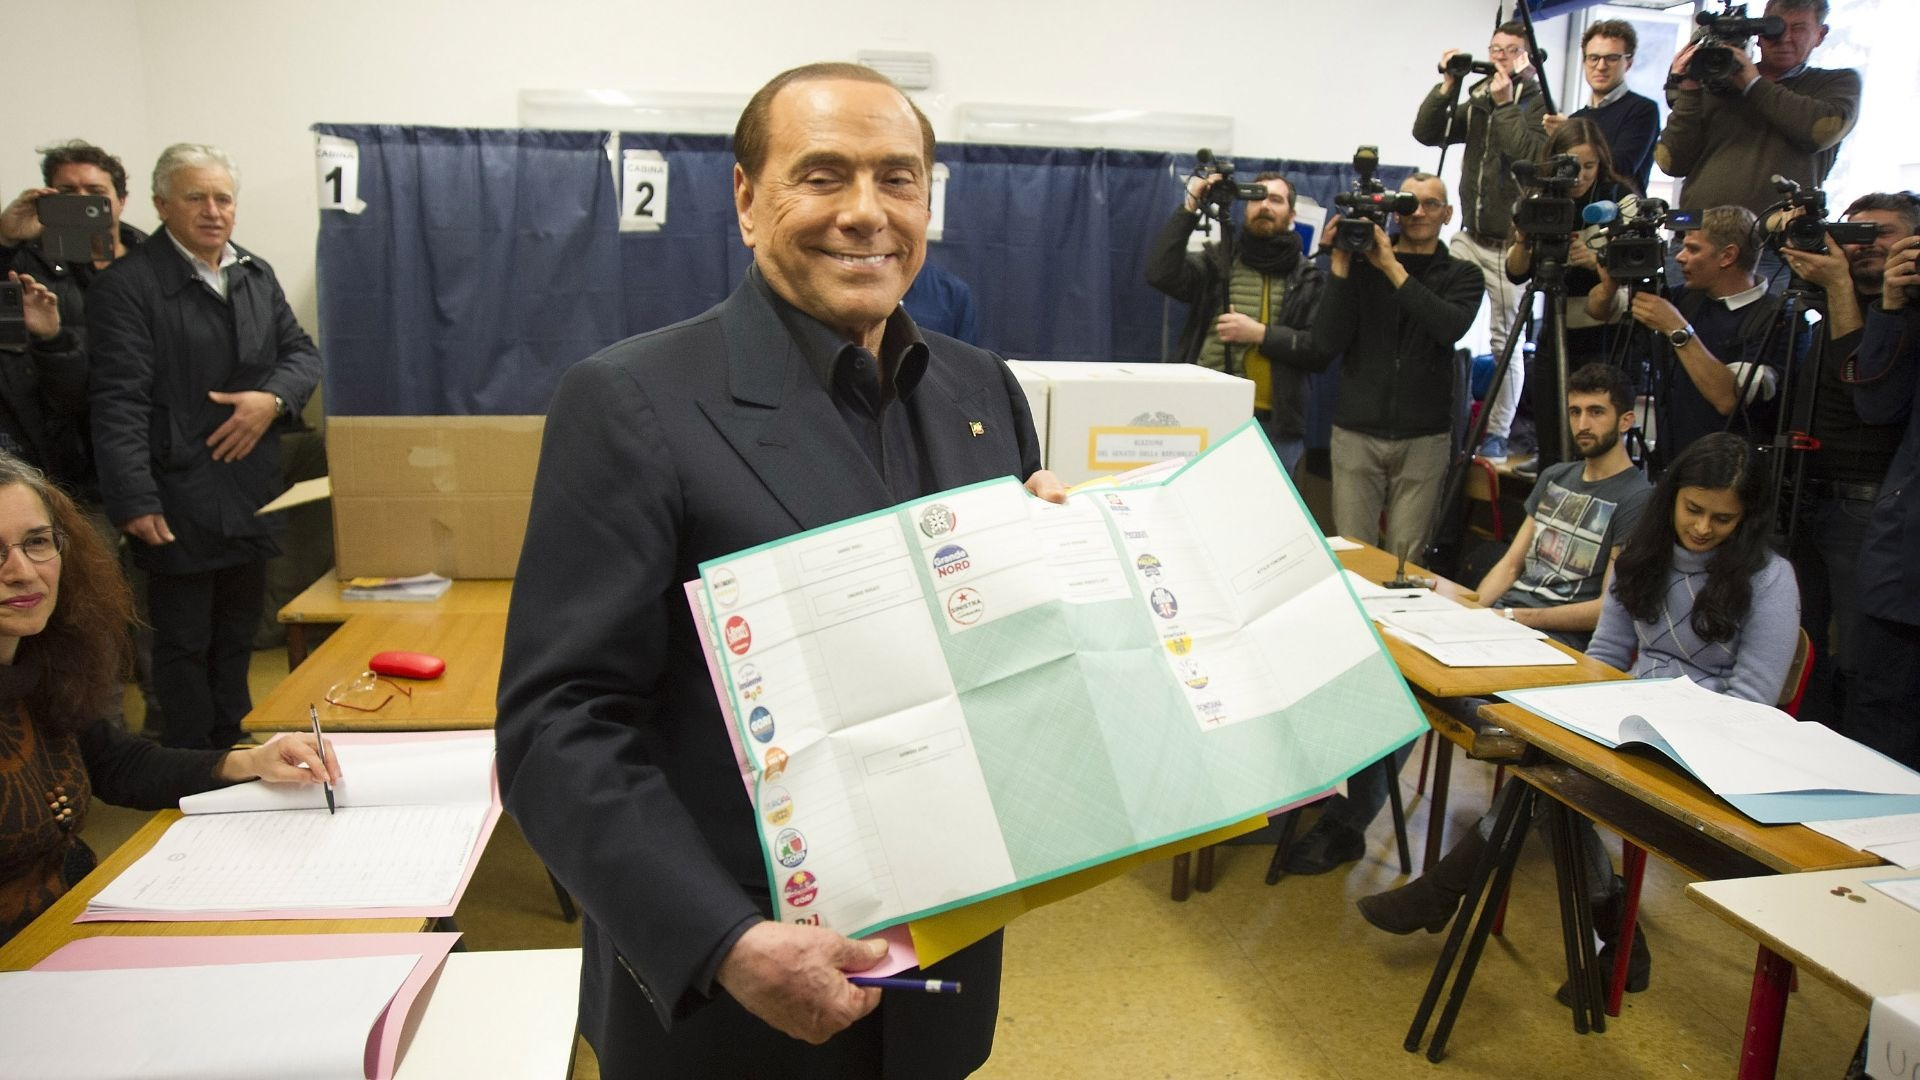 Silvio Berlusconi during an election protest.